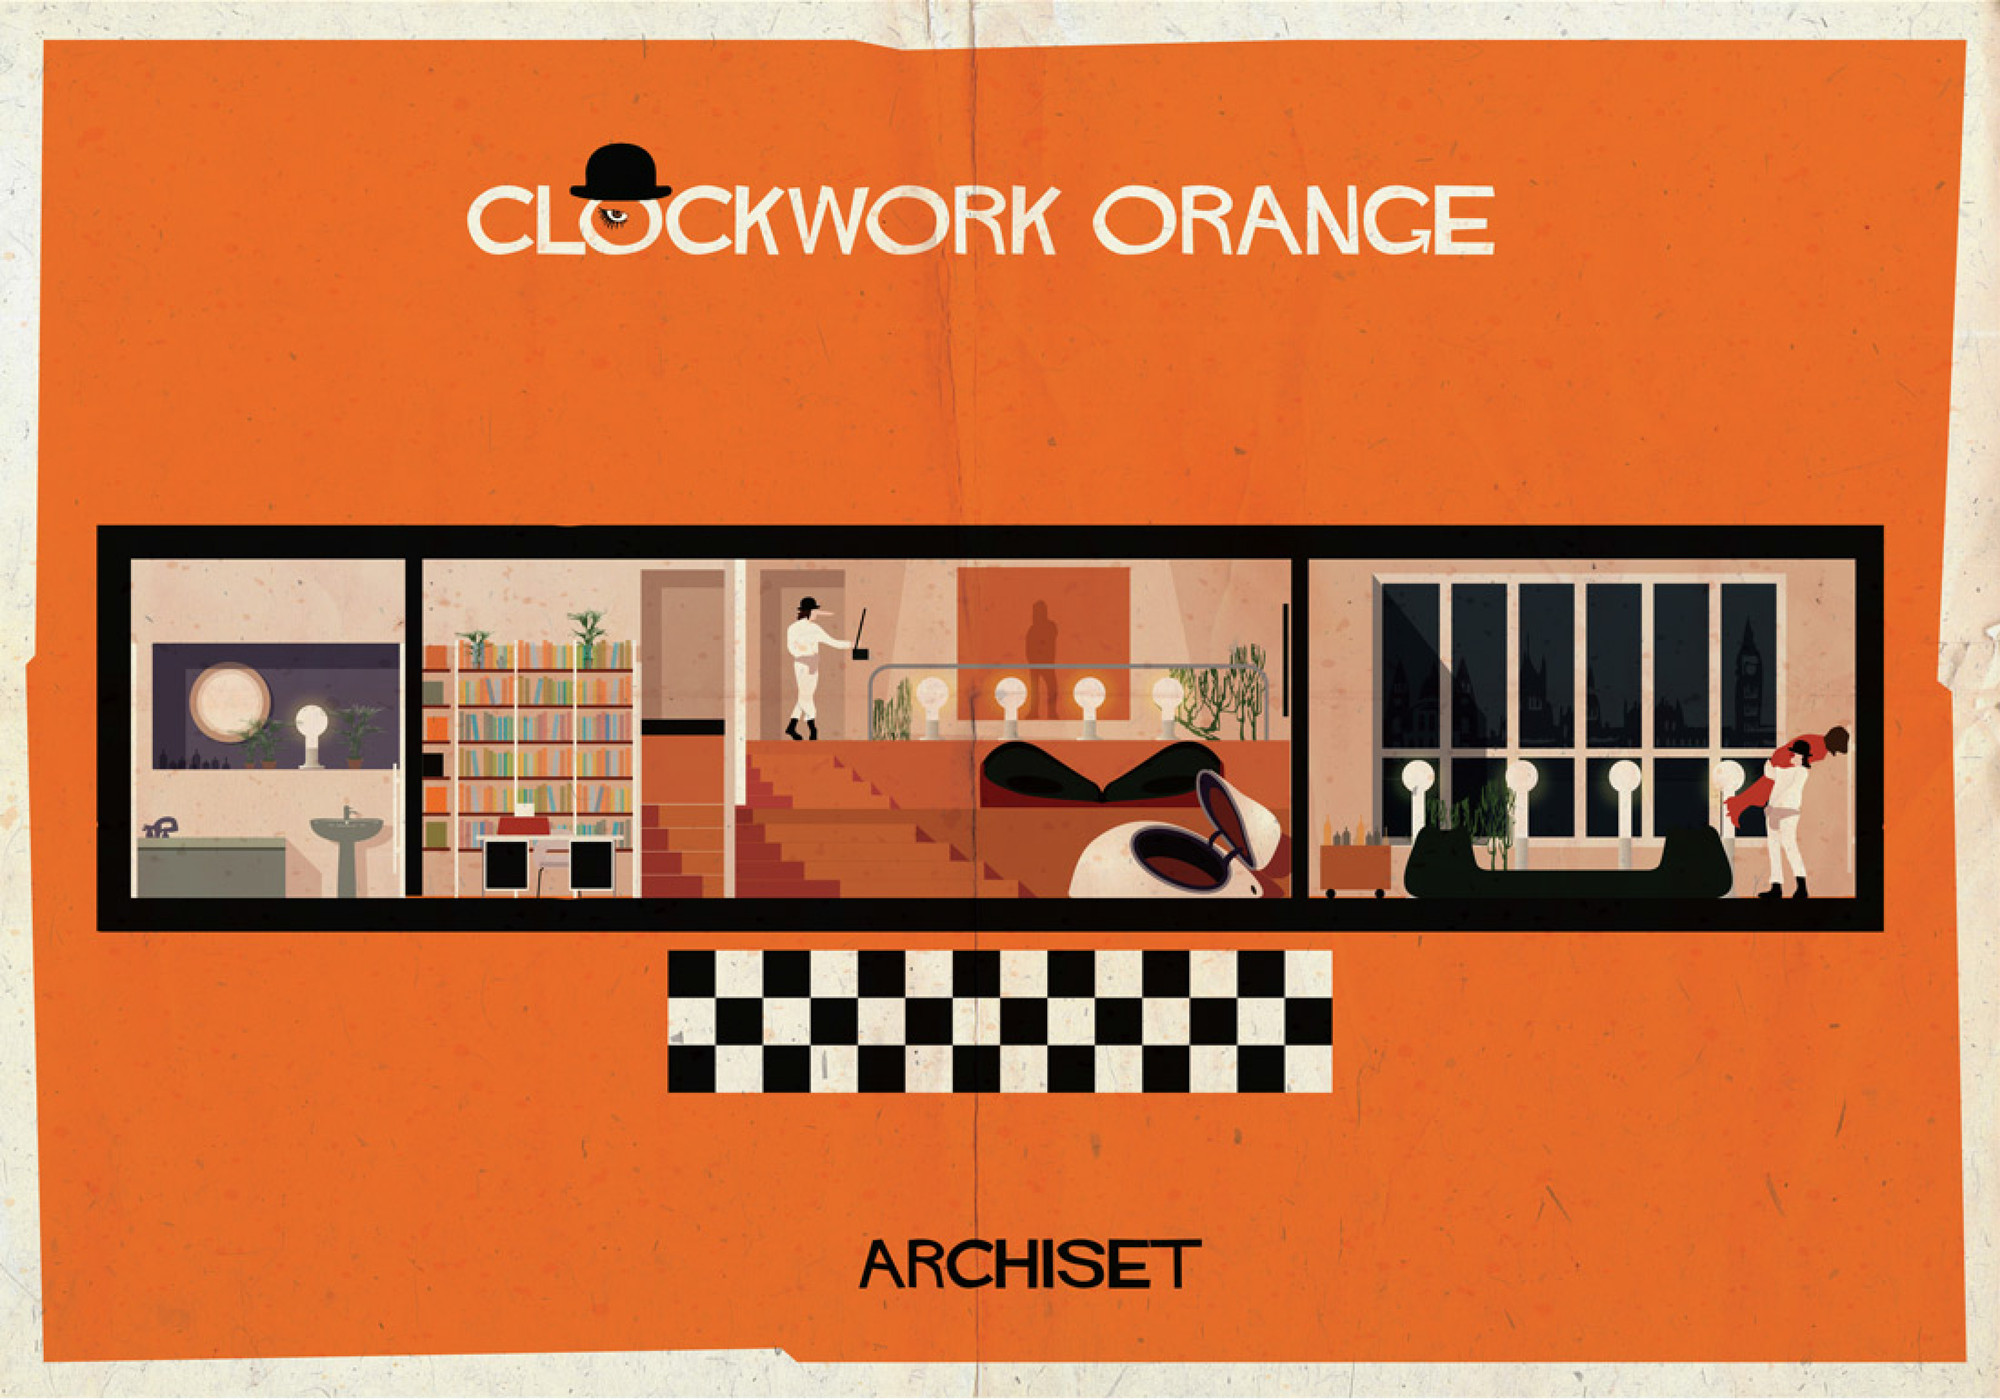 ARCHISET: An Illustrated Tribute to the Interiors of Classic Cinema, Courtesy of Federico Babina